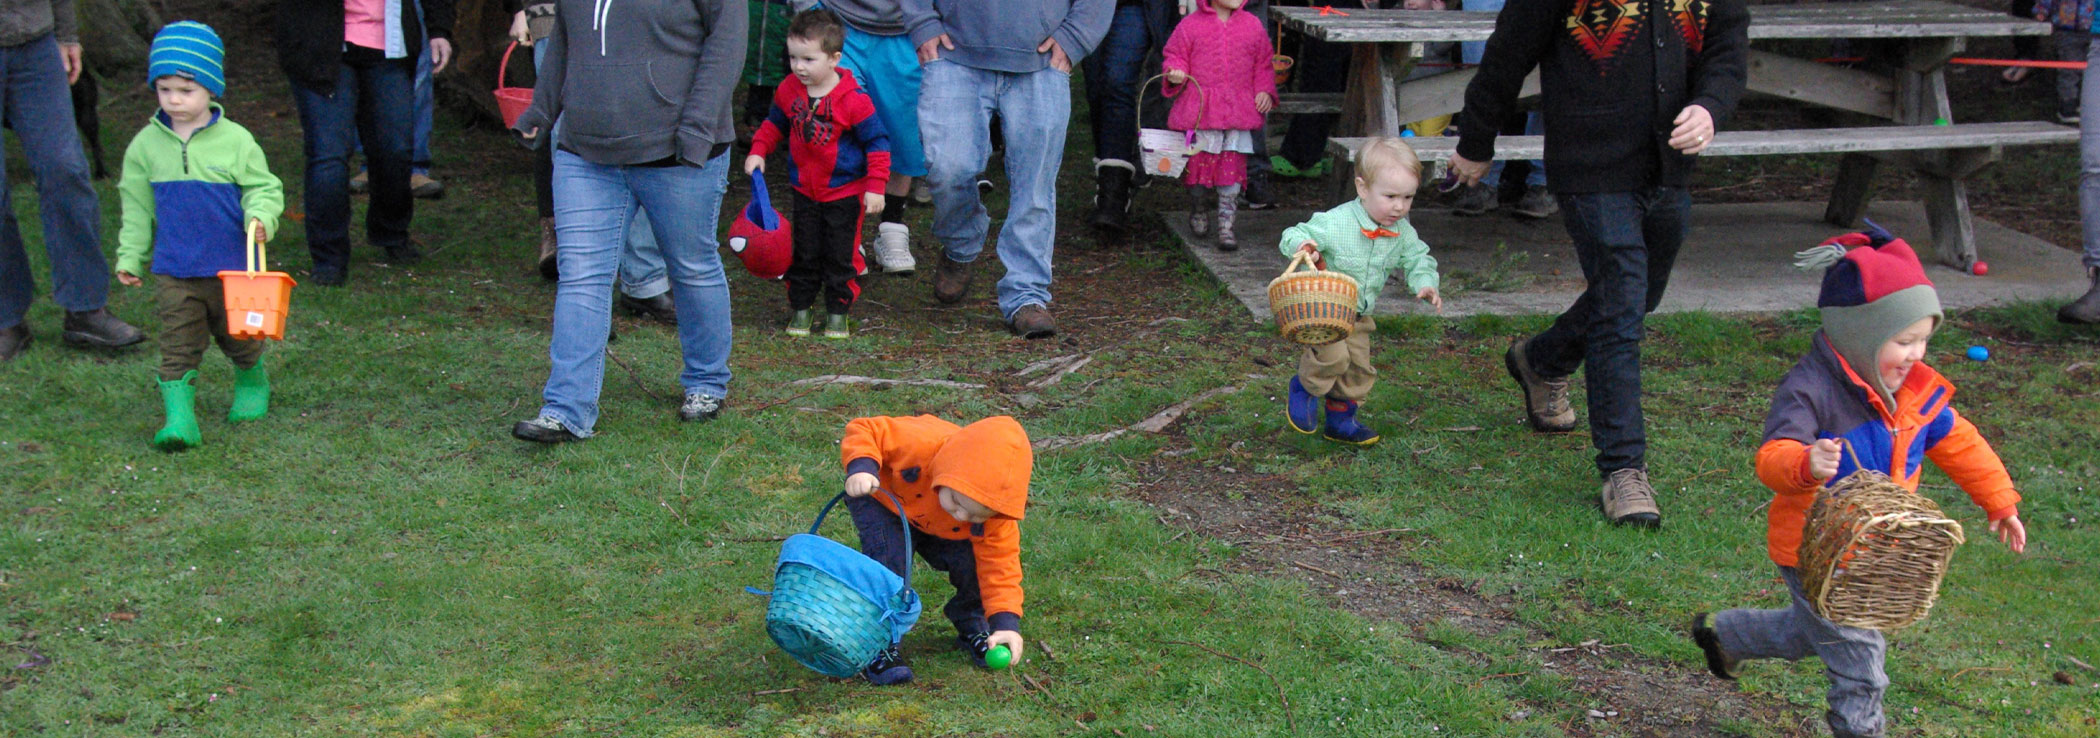 Orcas Island Lions Club Easter Egg Hunt